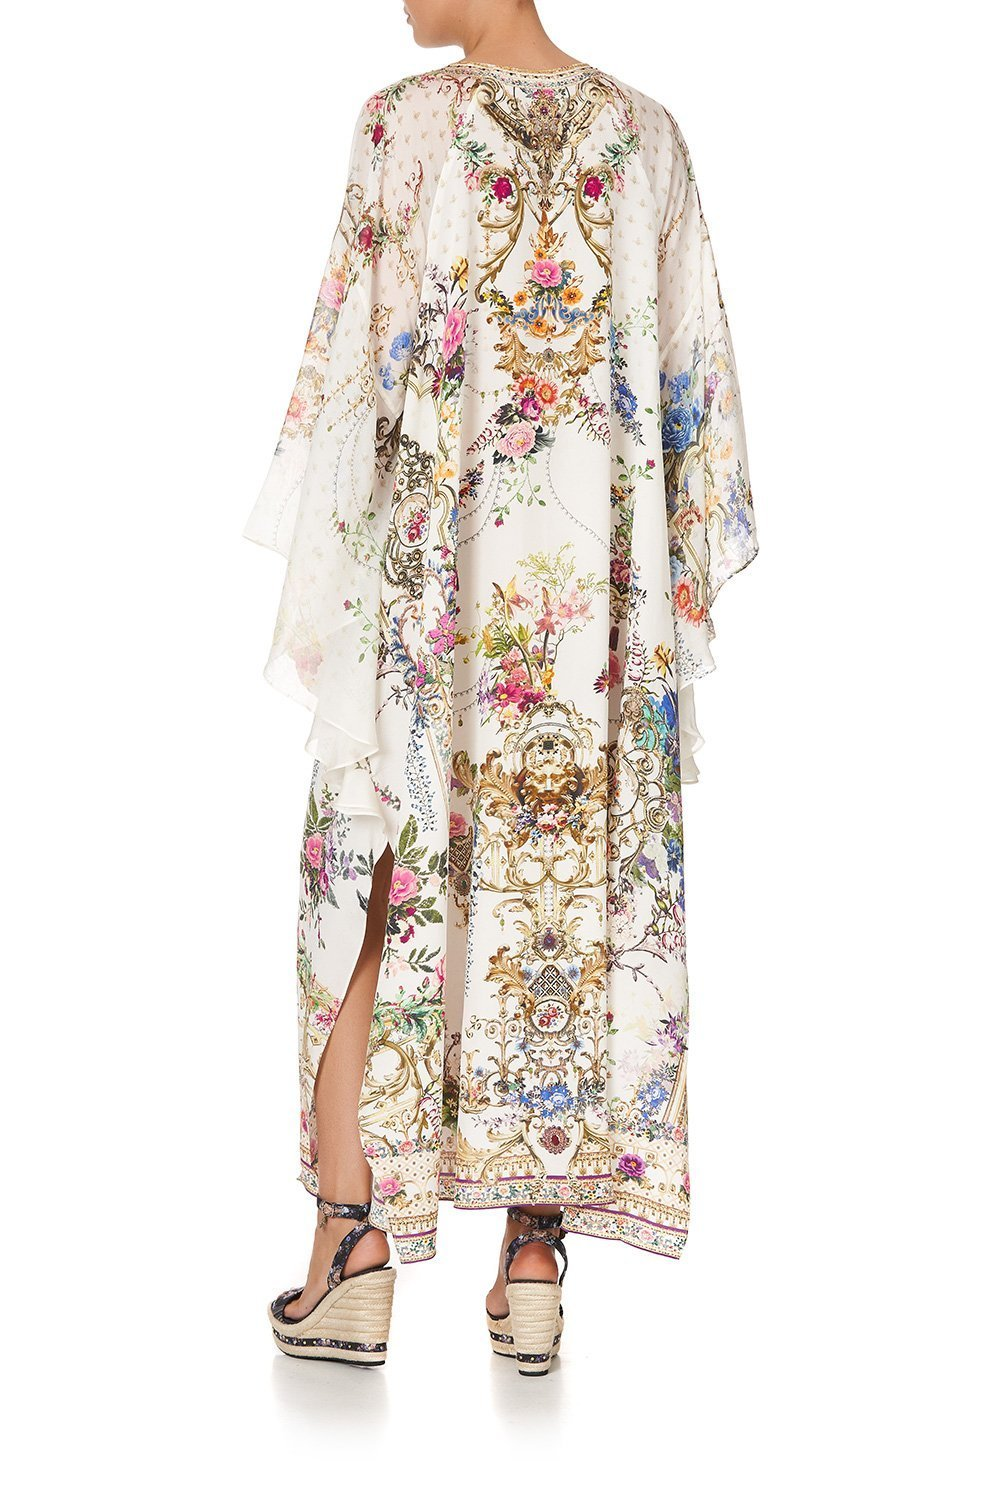 CAMILLA_00011115_BY_THE_MEADOW_LONG_RAGLAN_SLEEVE_FLARED_KAFTAN_3_1024x1024@2x